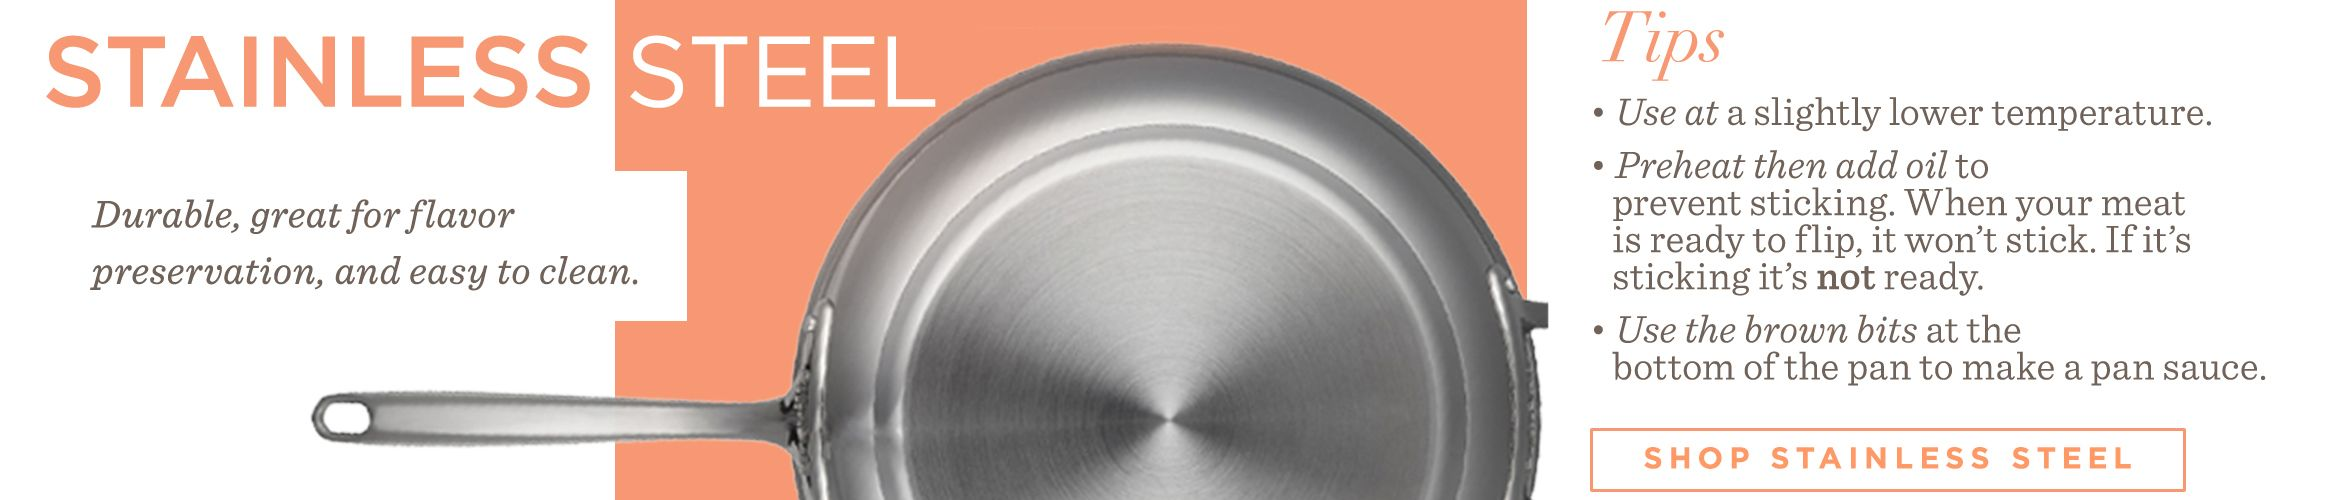 Stainless Steel. Shop Stainless Steel